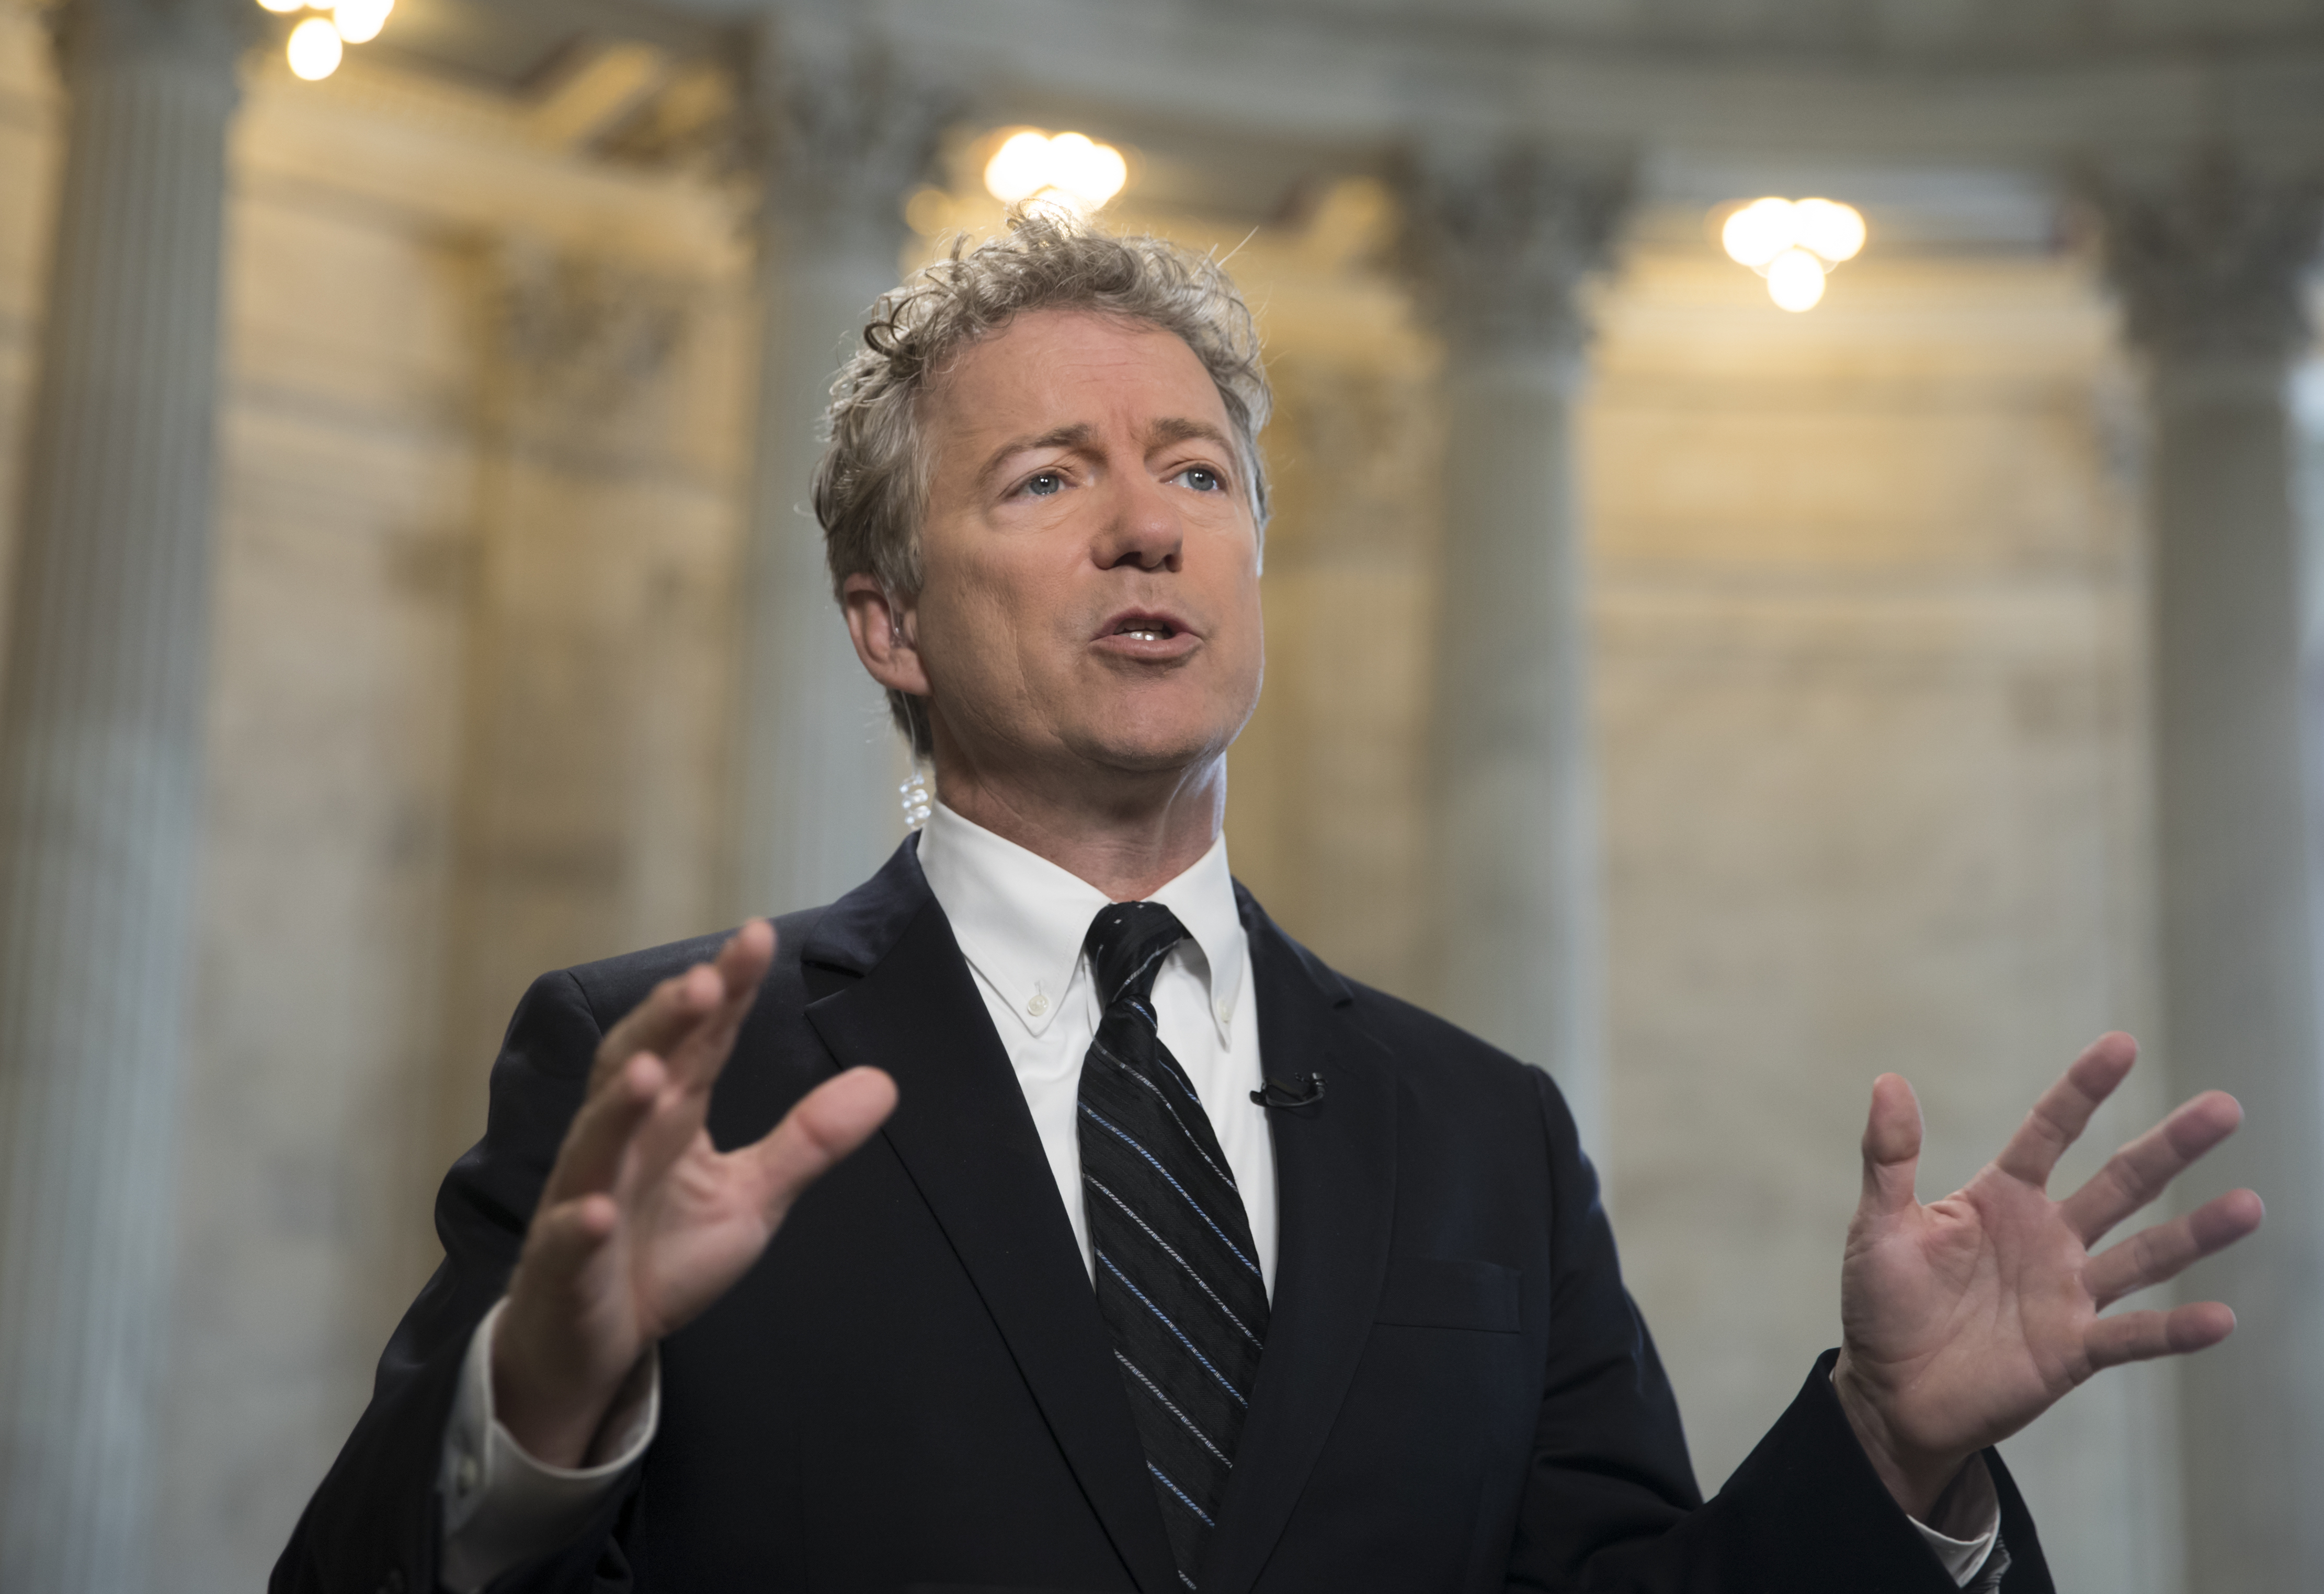 FILE - Sen. Rand Paul, R-Ky., speaks during a TV news interview on Capitol Hill in Washington, March 21, 2018.